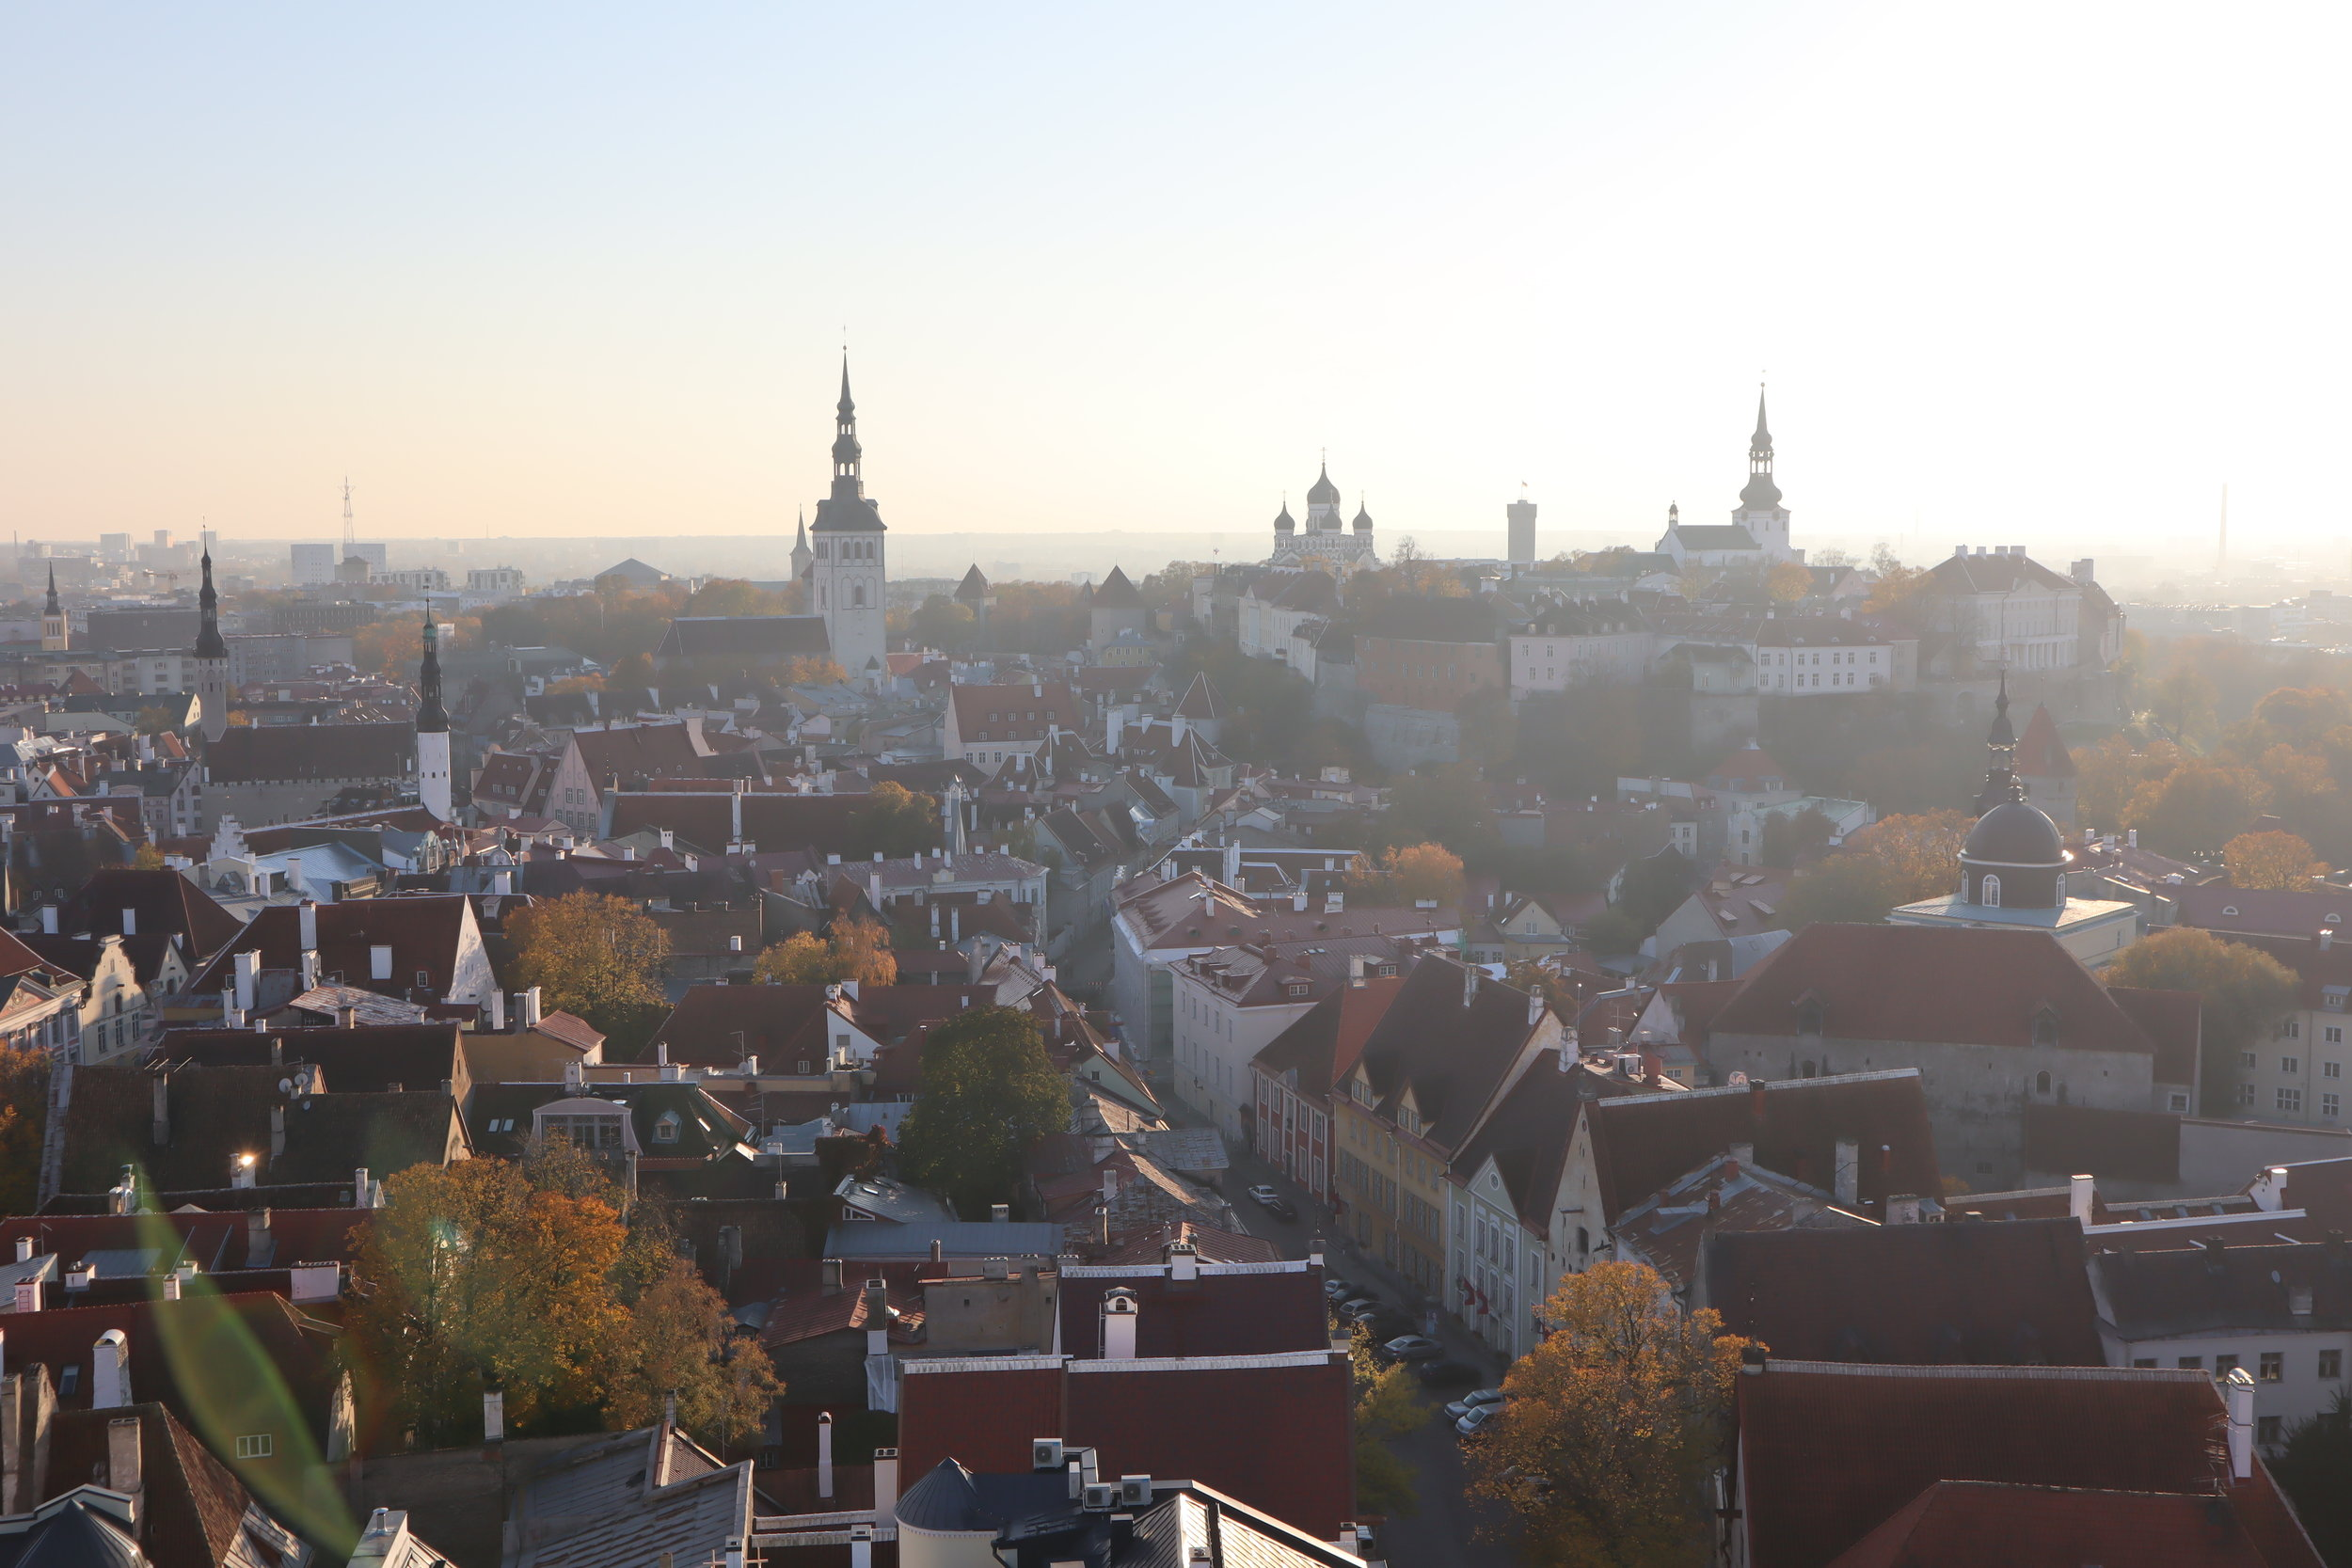 View from St. Olaf's Church